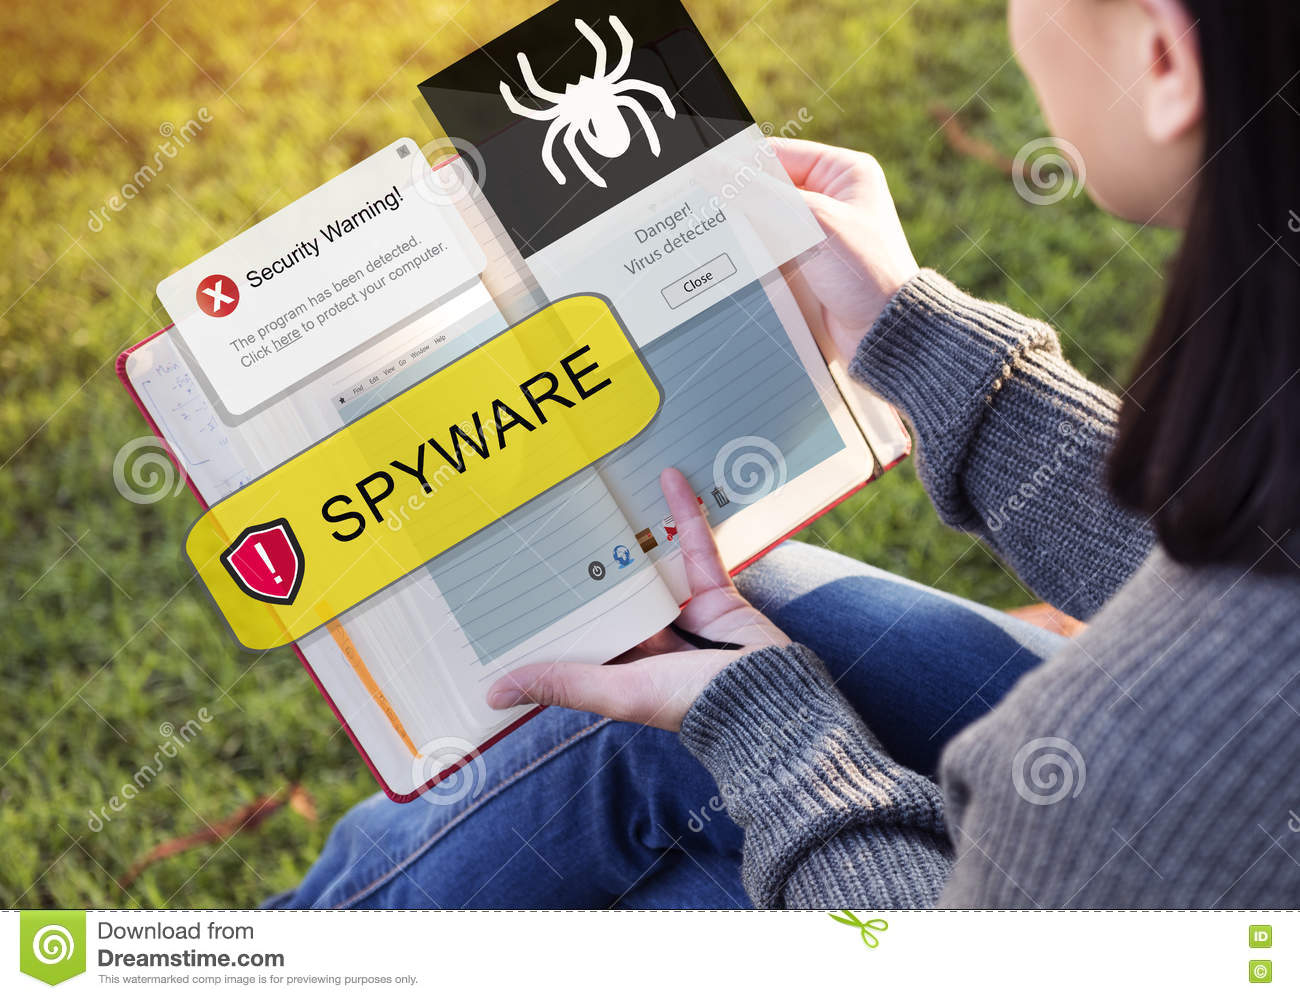 Spyware Computer Hacker Virus Malware Concept Stock Photo - Image of